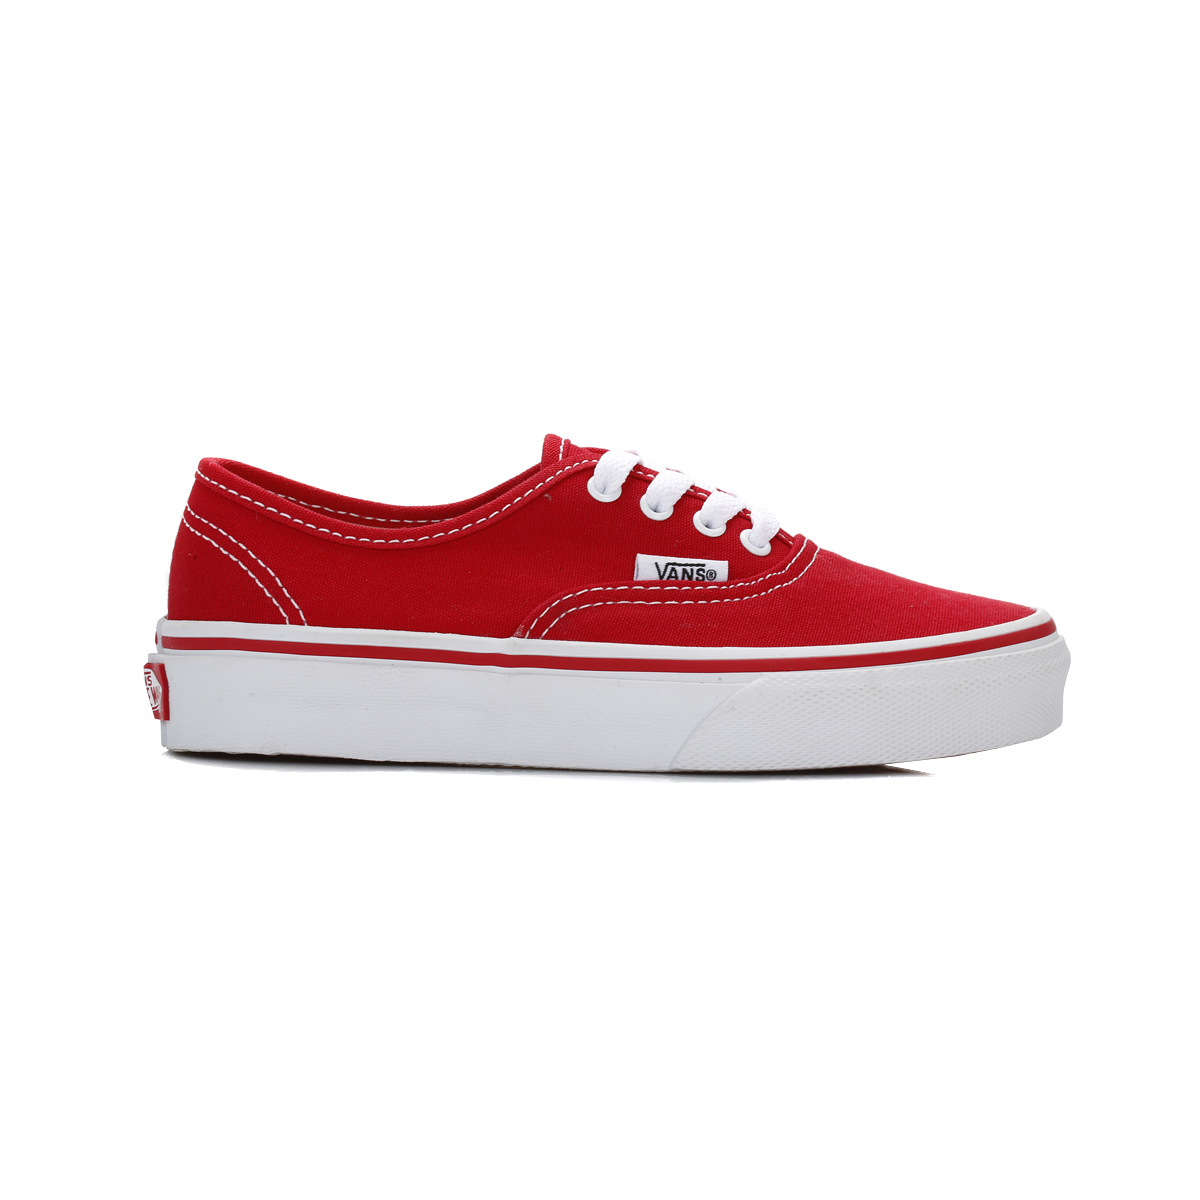 vans shoes red and white. vans kids red canvas trainers, lace up sneakers, casual shoes vwwx6rt and white